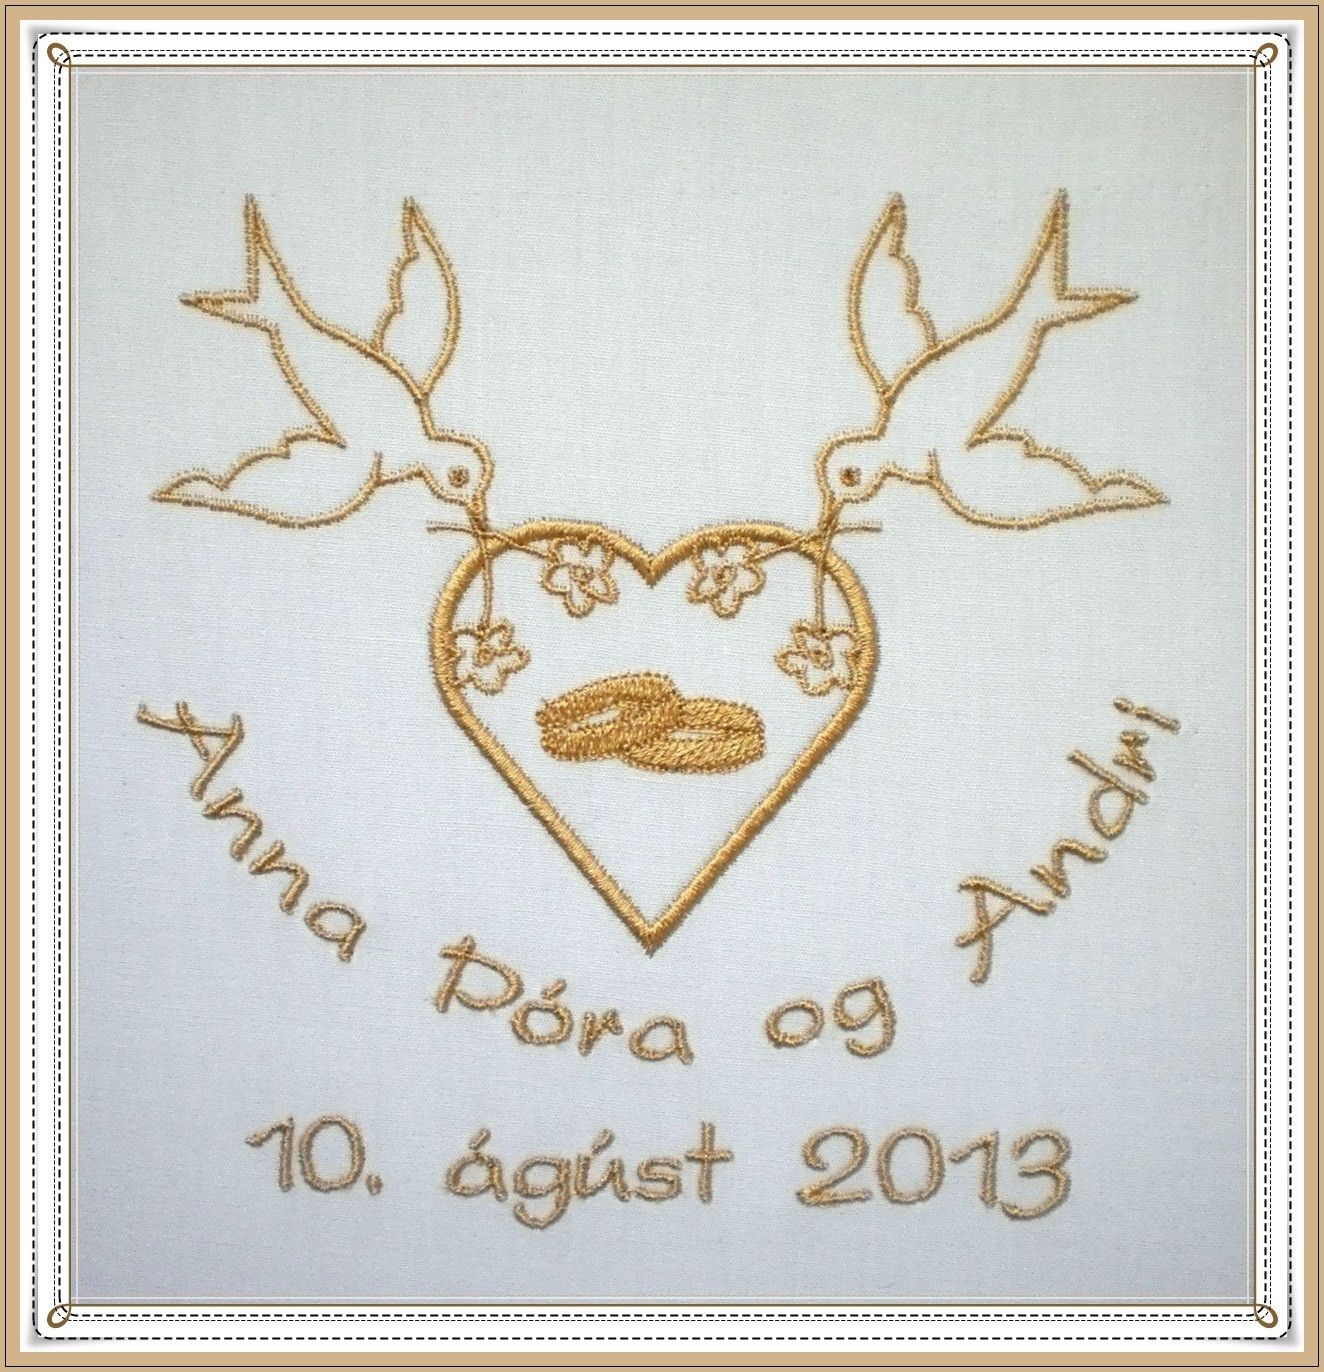 New Wedding Embroidery Designs Bing Images Wedding Embroidery Designs Of Wonderful 48 Photos Wedding Embroidery Designs